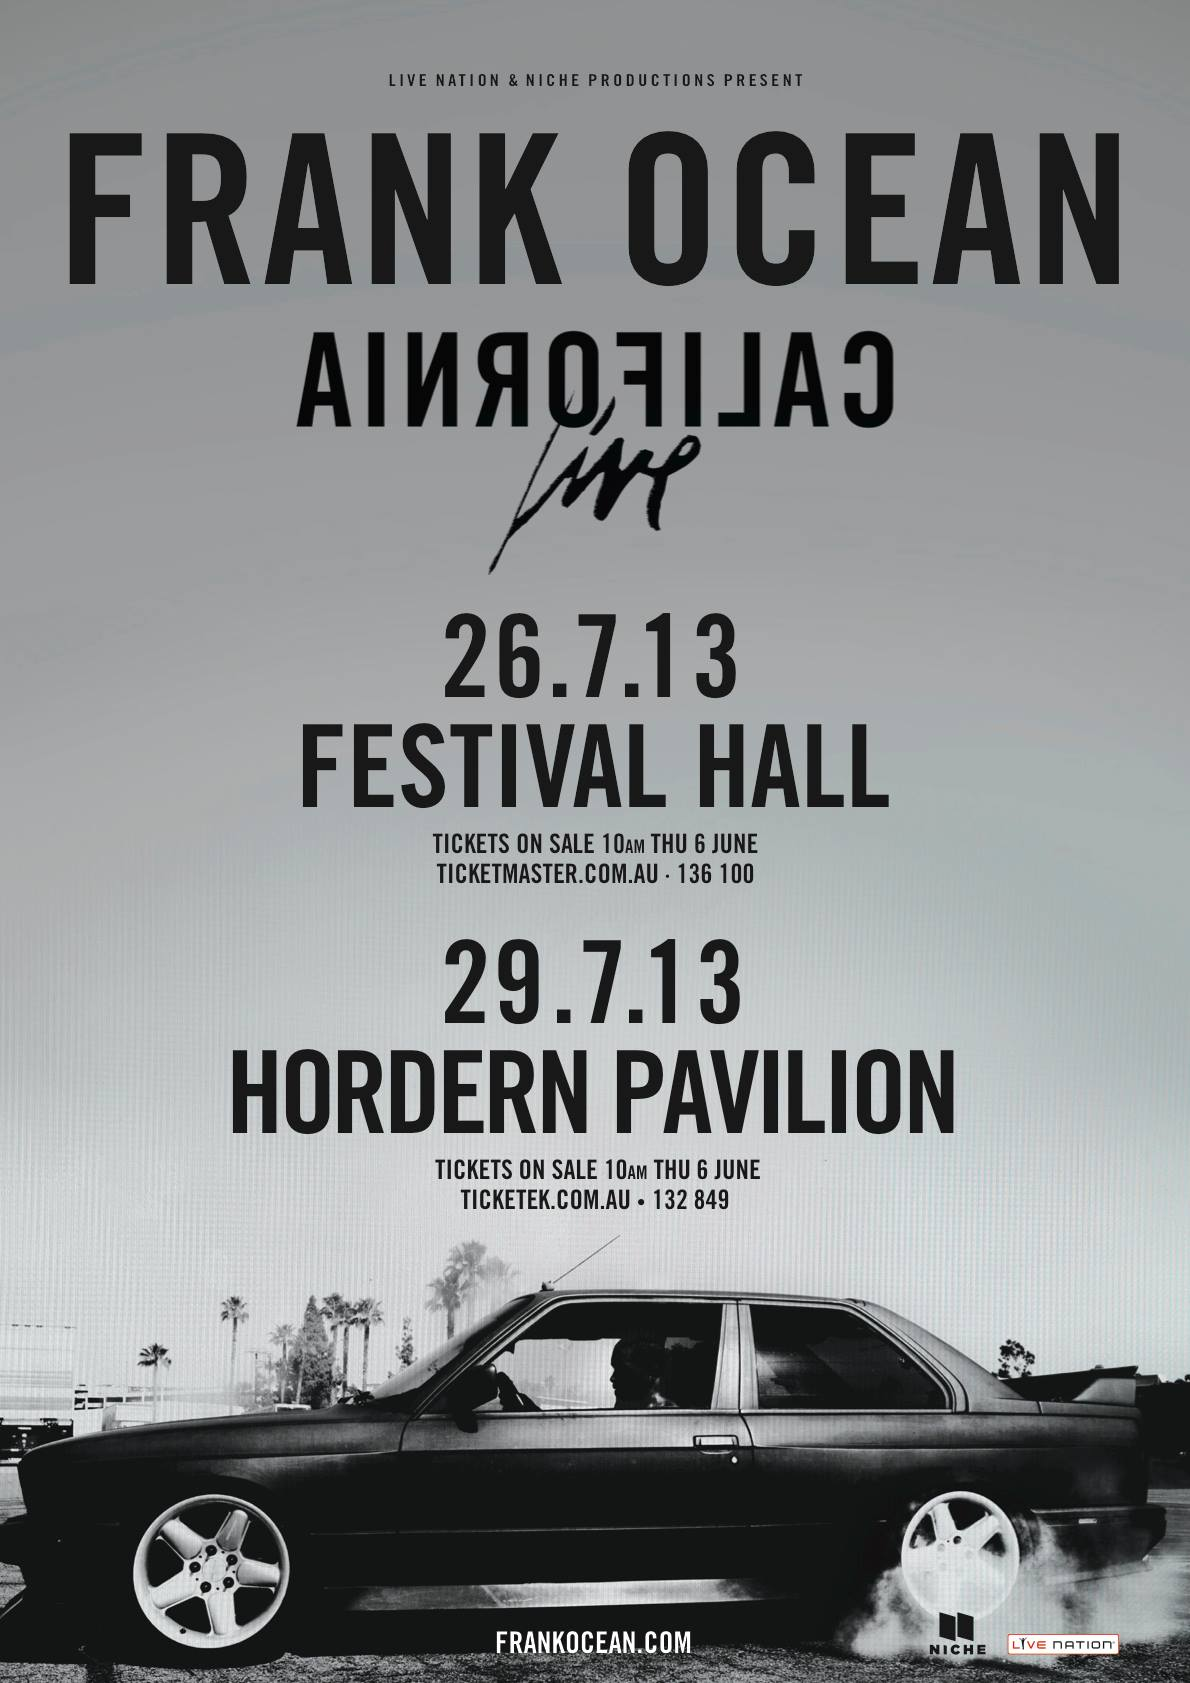 Frank Ocean Tour Blog The Web Comes To Life